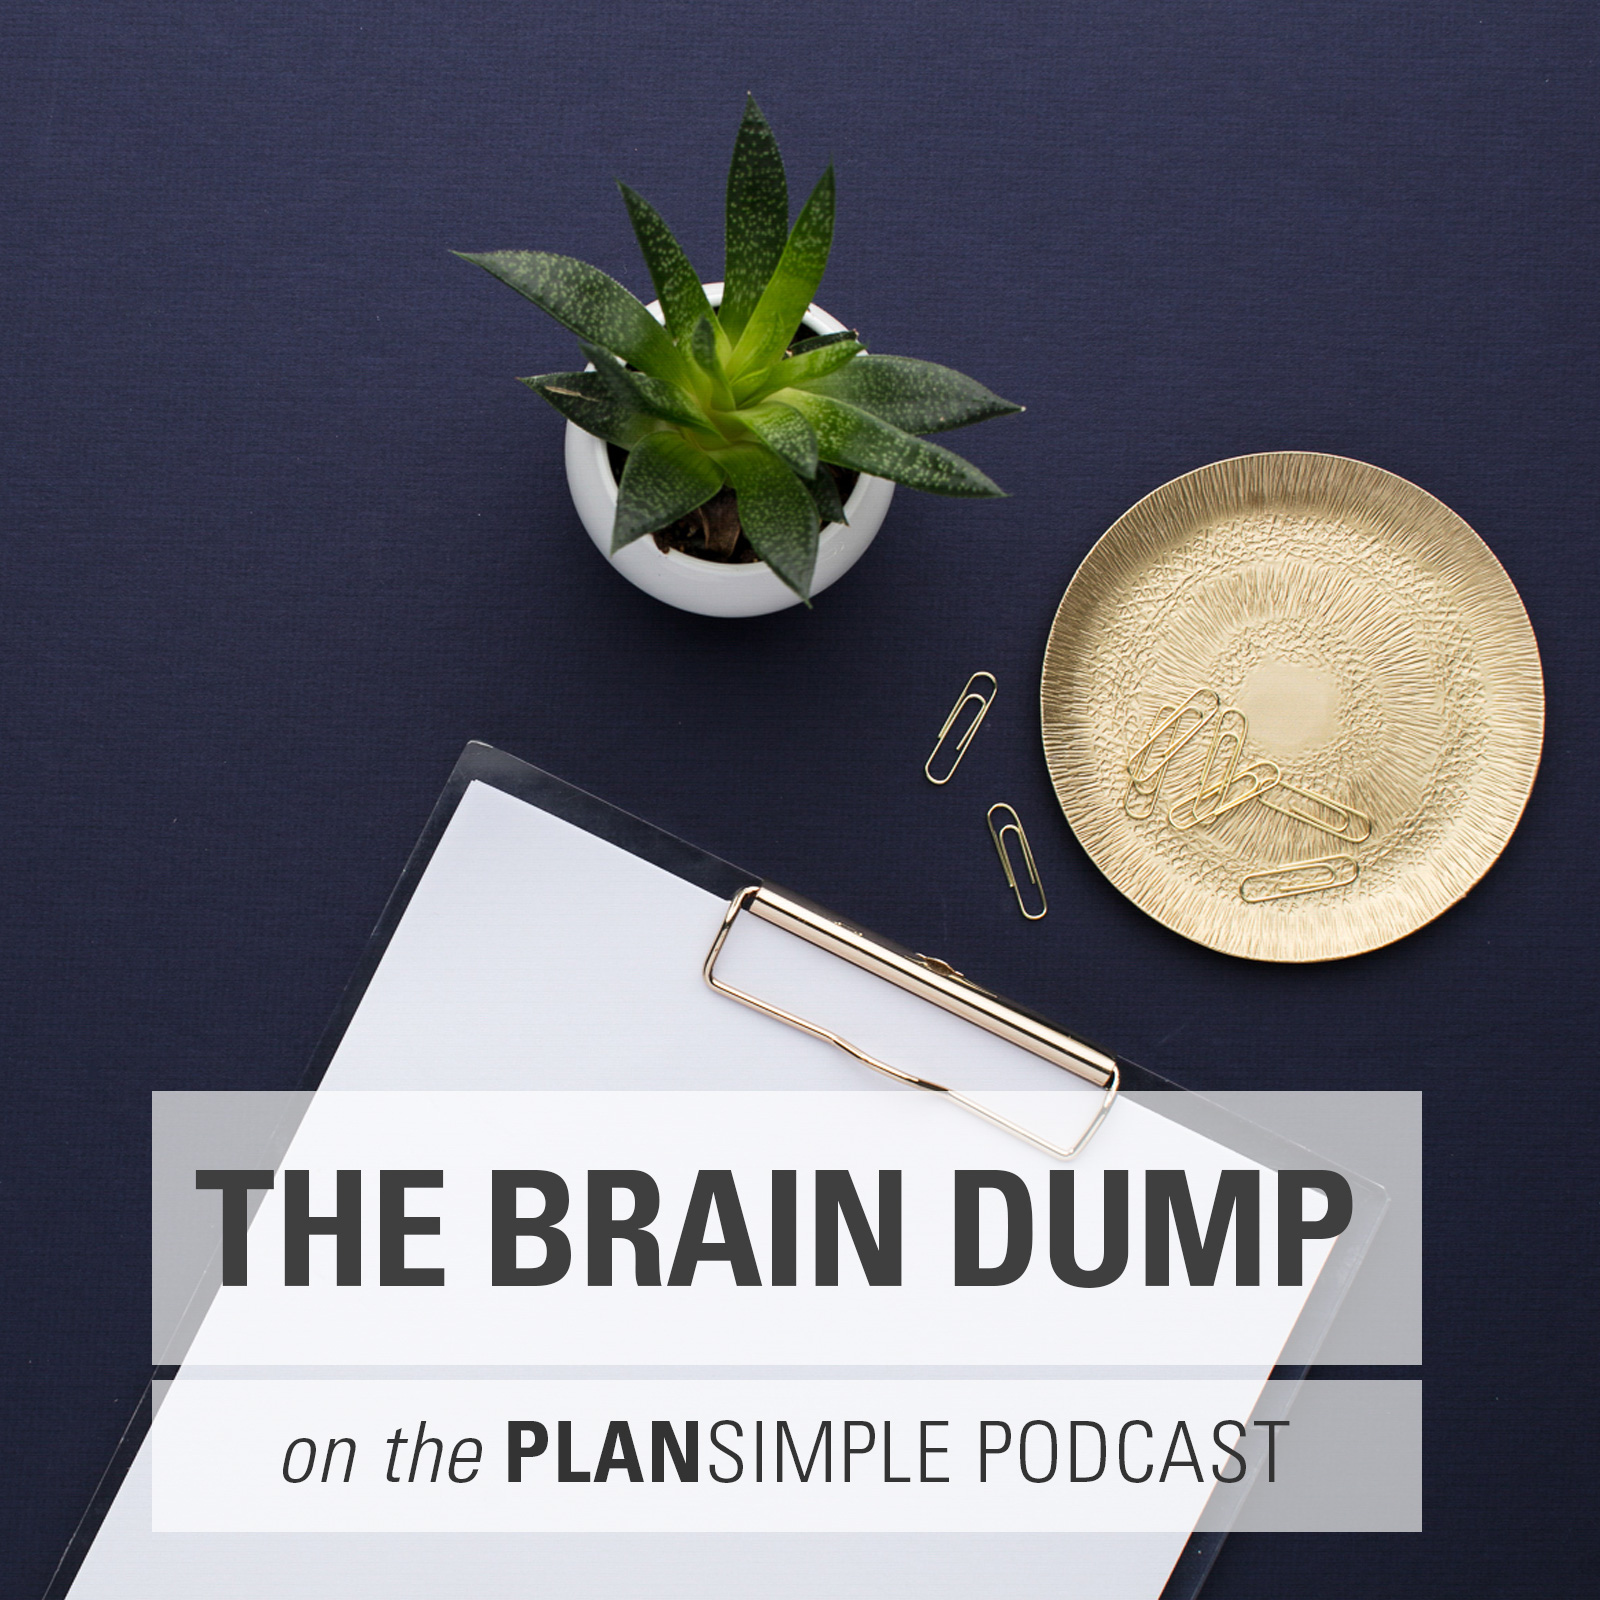 What To Do With The Brain Dump